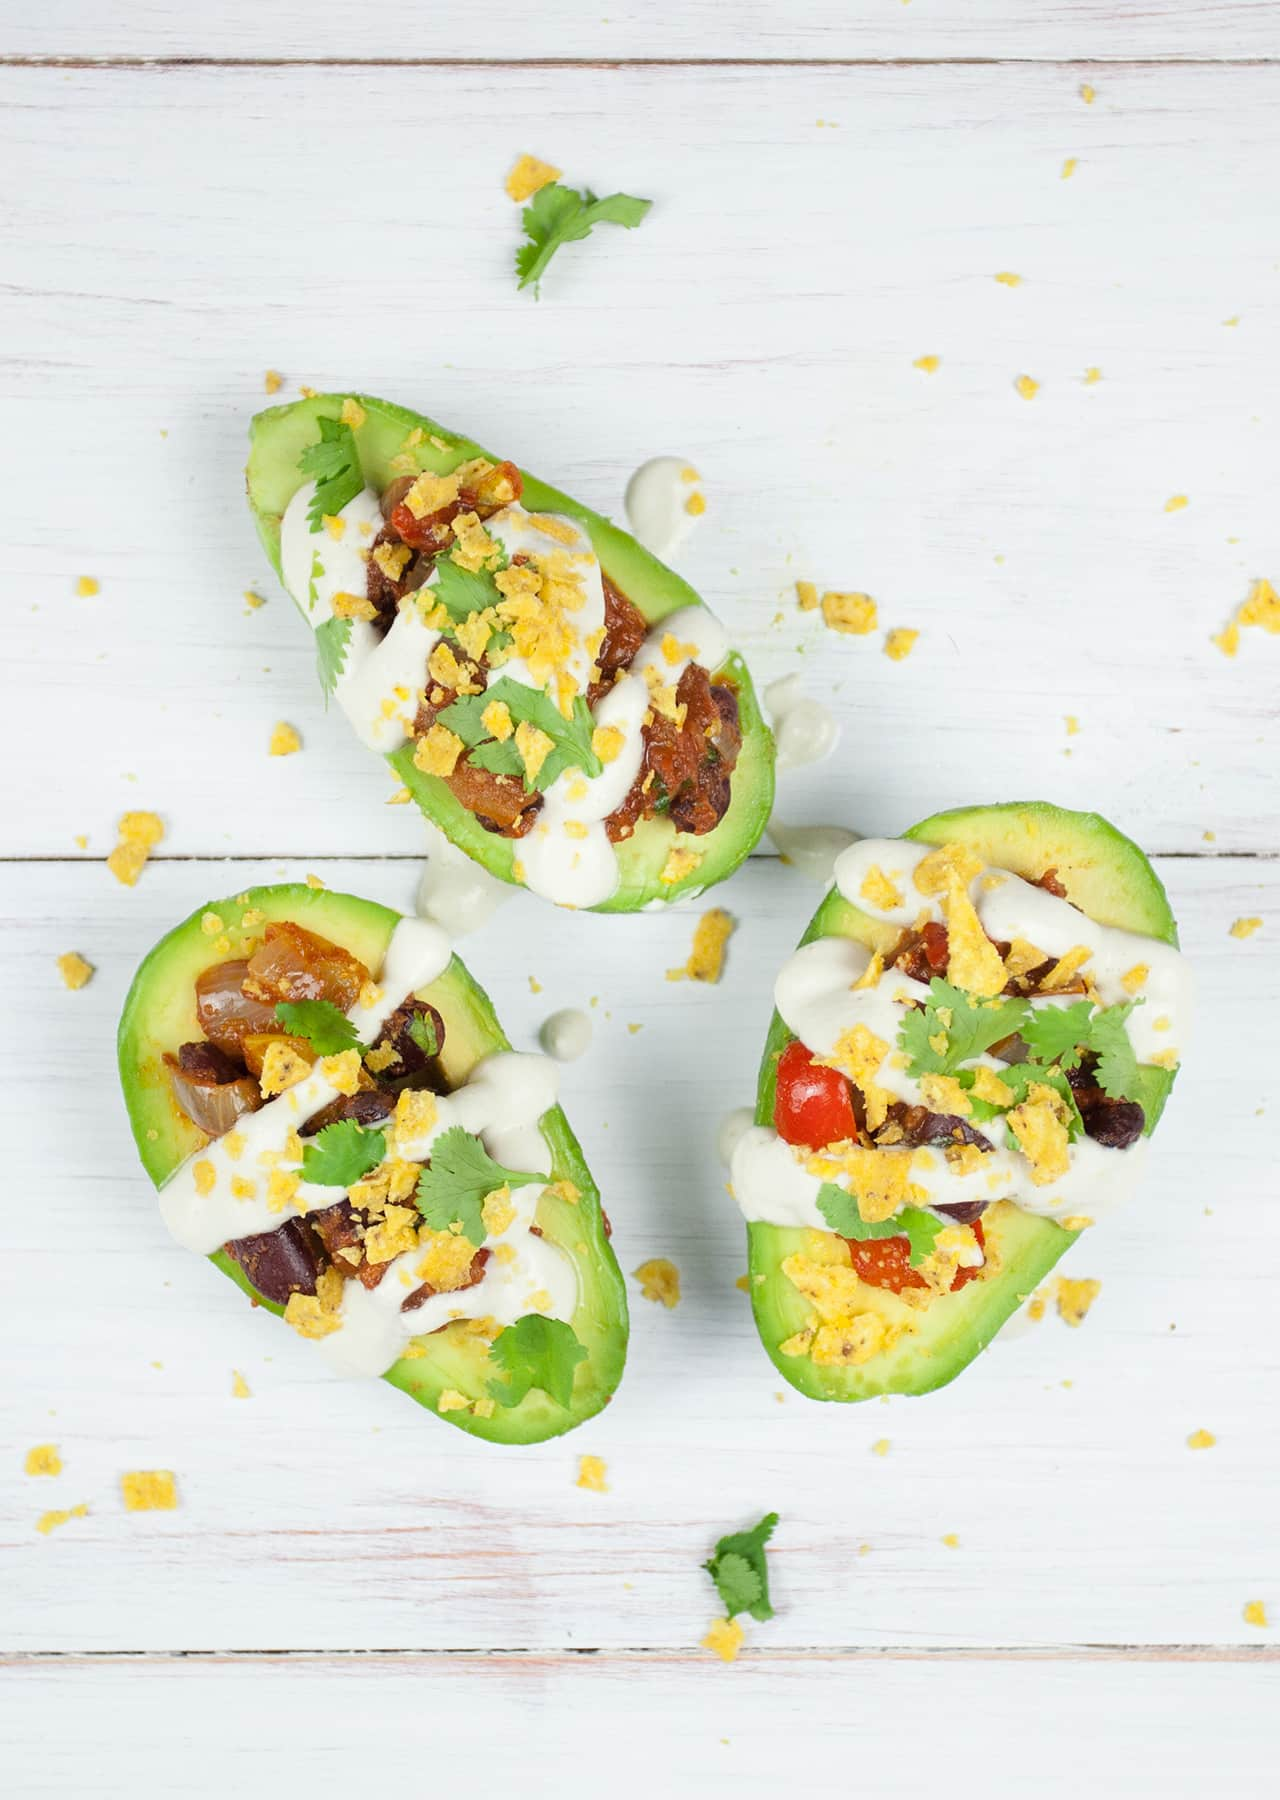 Chilli Stuffed Avocado Boats